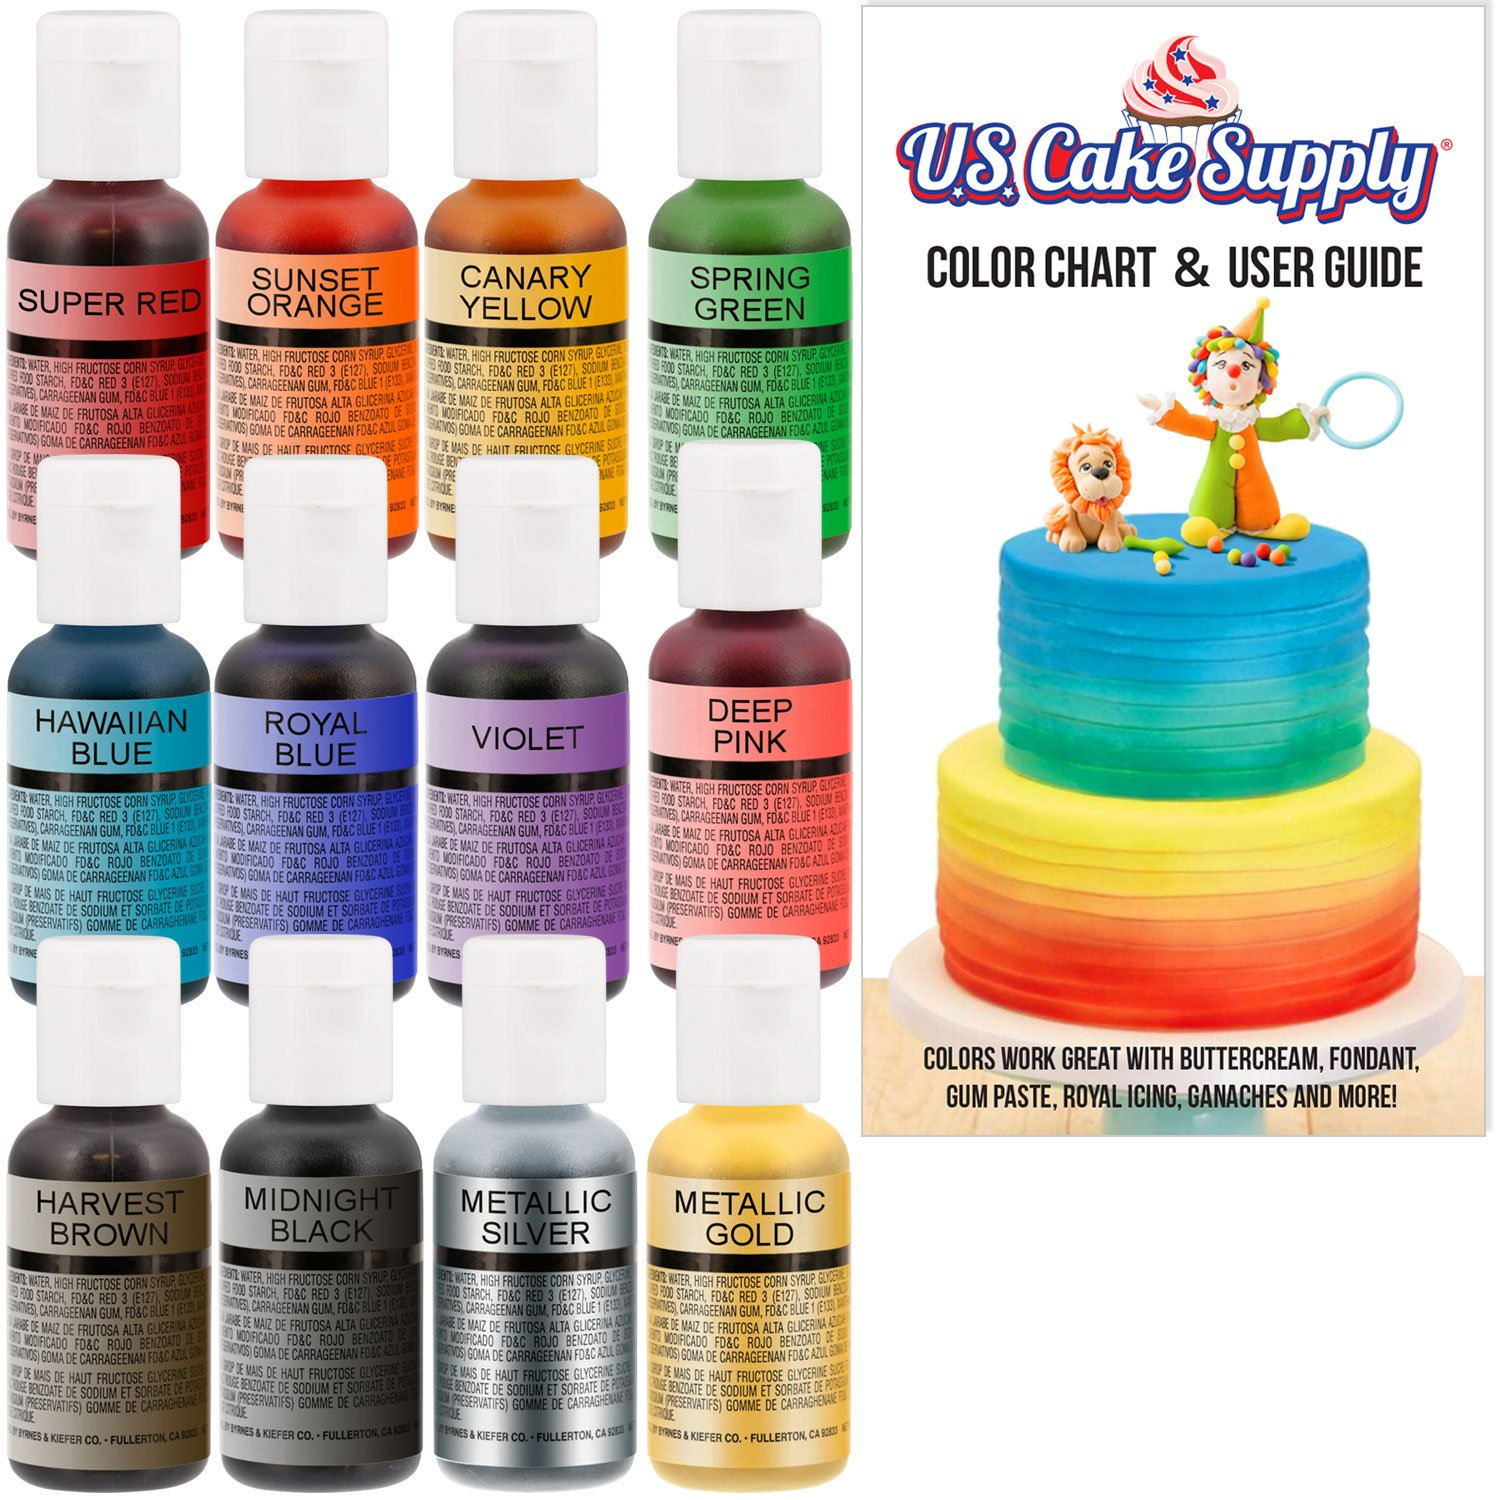 12 Color-US Cake Supply by Chefmaster Airbrush Cake Color Set - The 12 Most Popular Colors in 0.7 fl. oz. (20ml) Bottles by U.S. Cake Supply